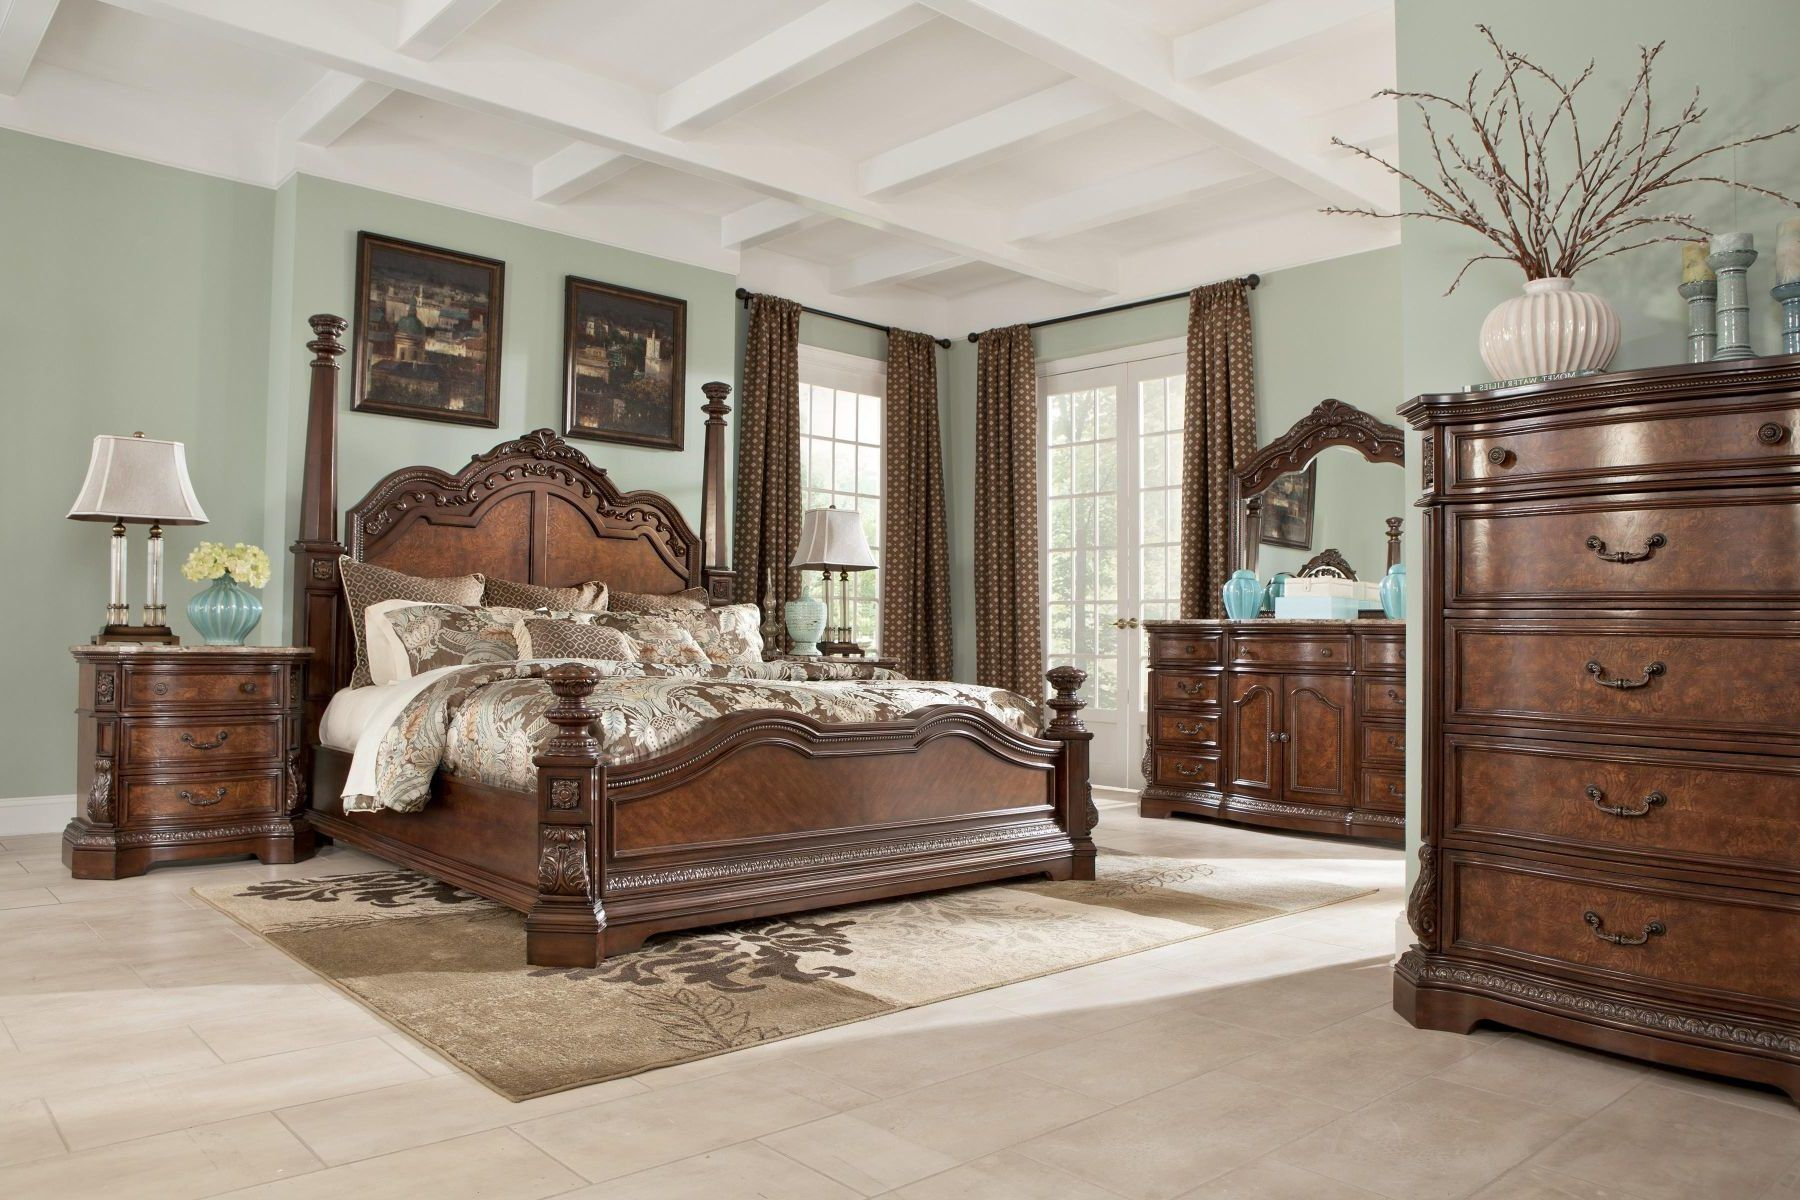 cool Great Marlo Furniture Bedroom Sets 7 On Home Design Ideas